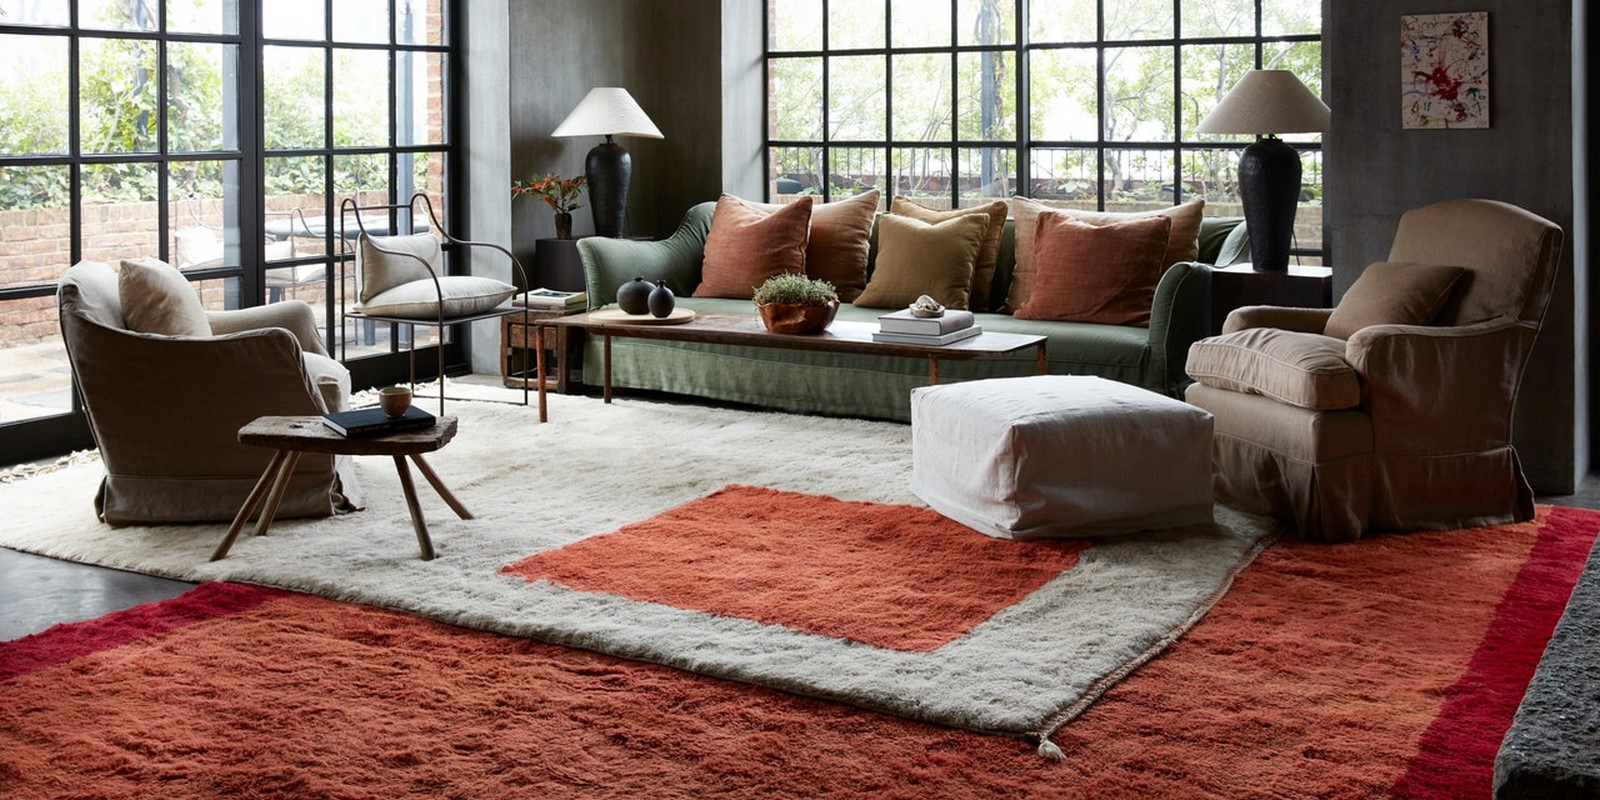 How to enhance Soft Furnishing Aesthetics in your house? - Sheet6